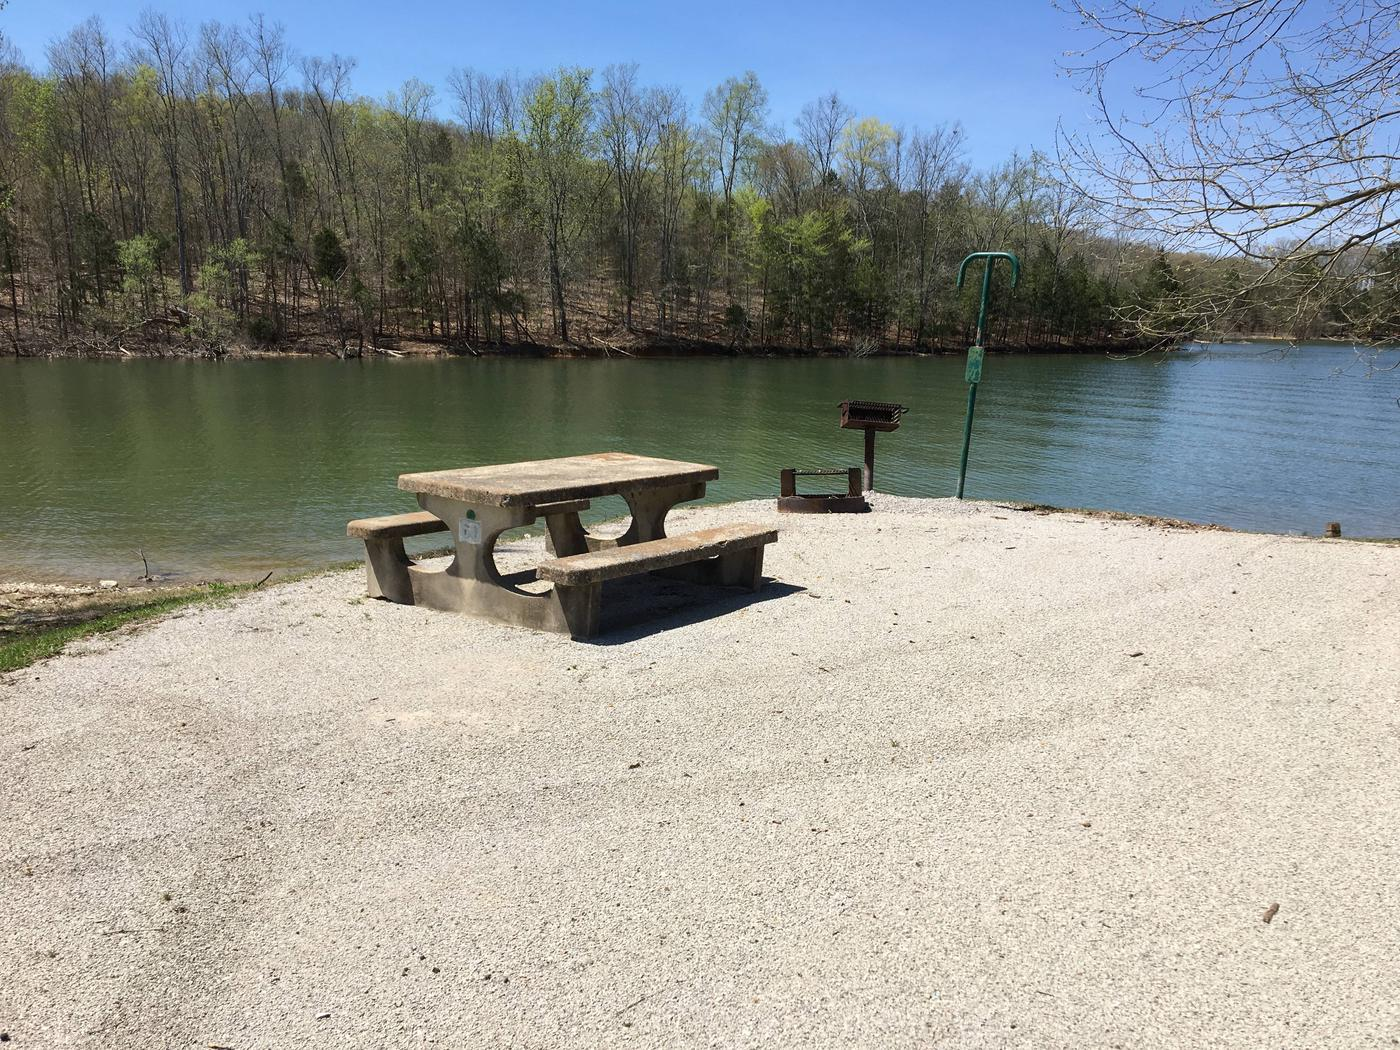 LILLYDALE CAMPGROUND SITE # 60 CONCRETE TABLE (2)LILLYDALE CAMPGROUND SITE # 60